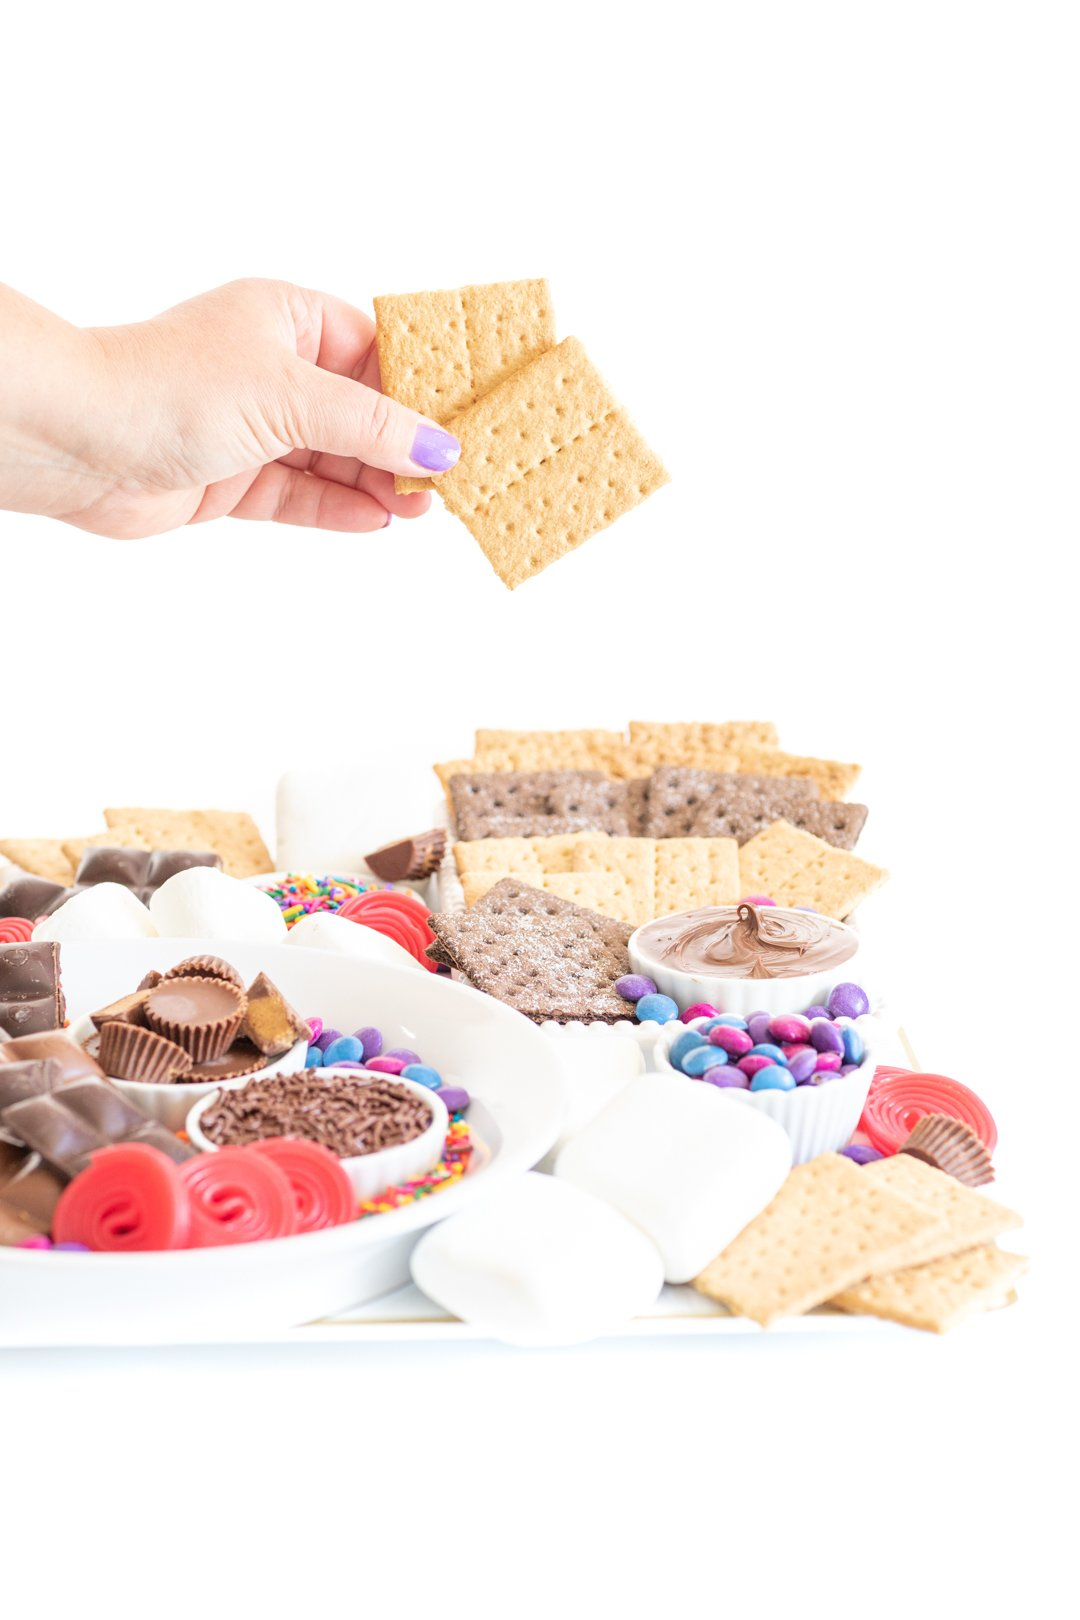 setting up a s'mores dessert board with graham crackers, candies and chocolate